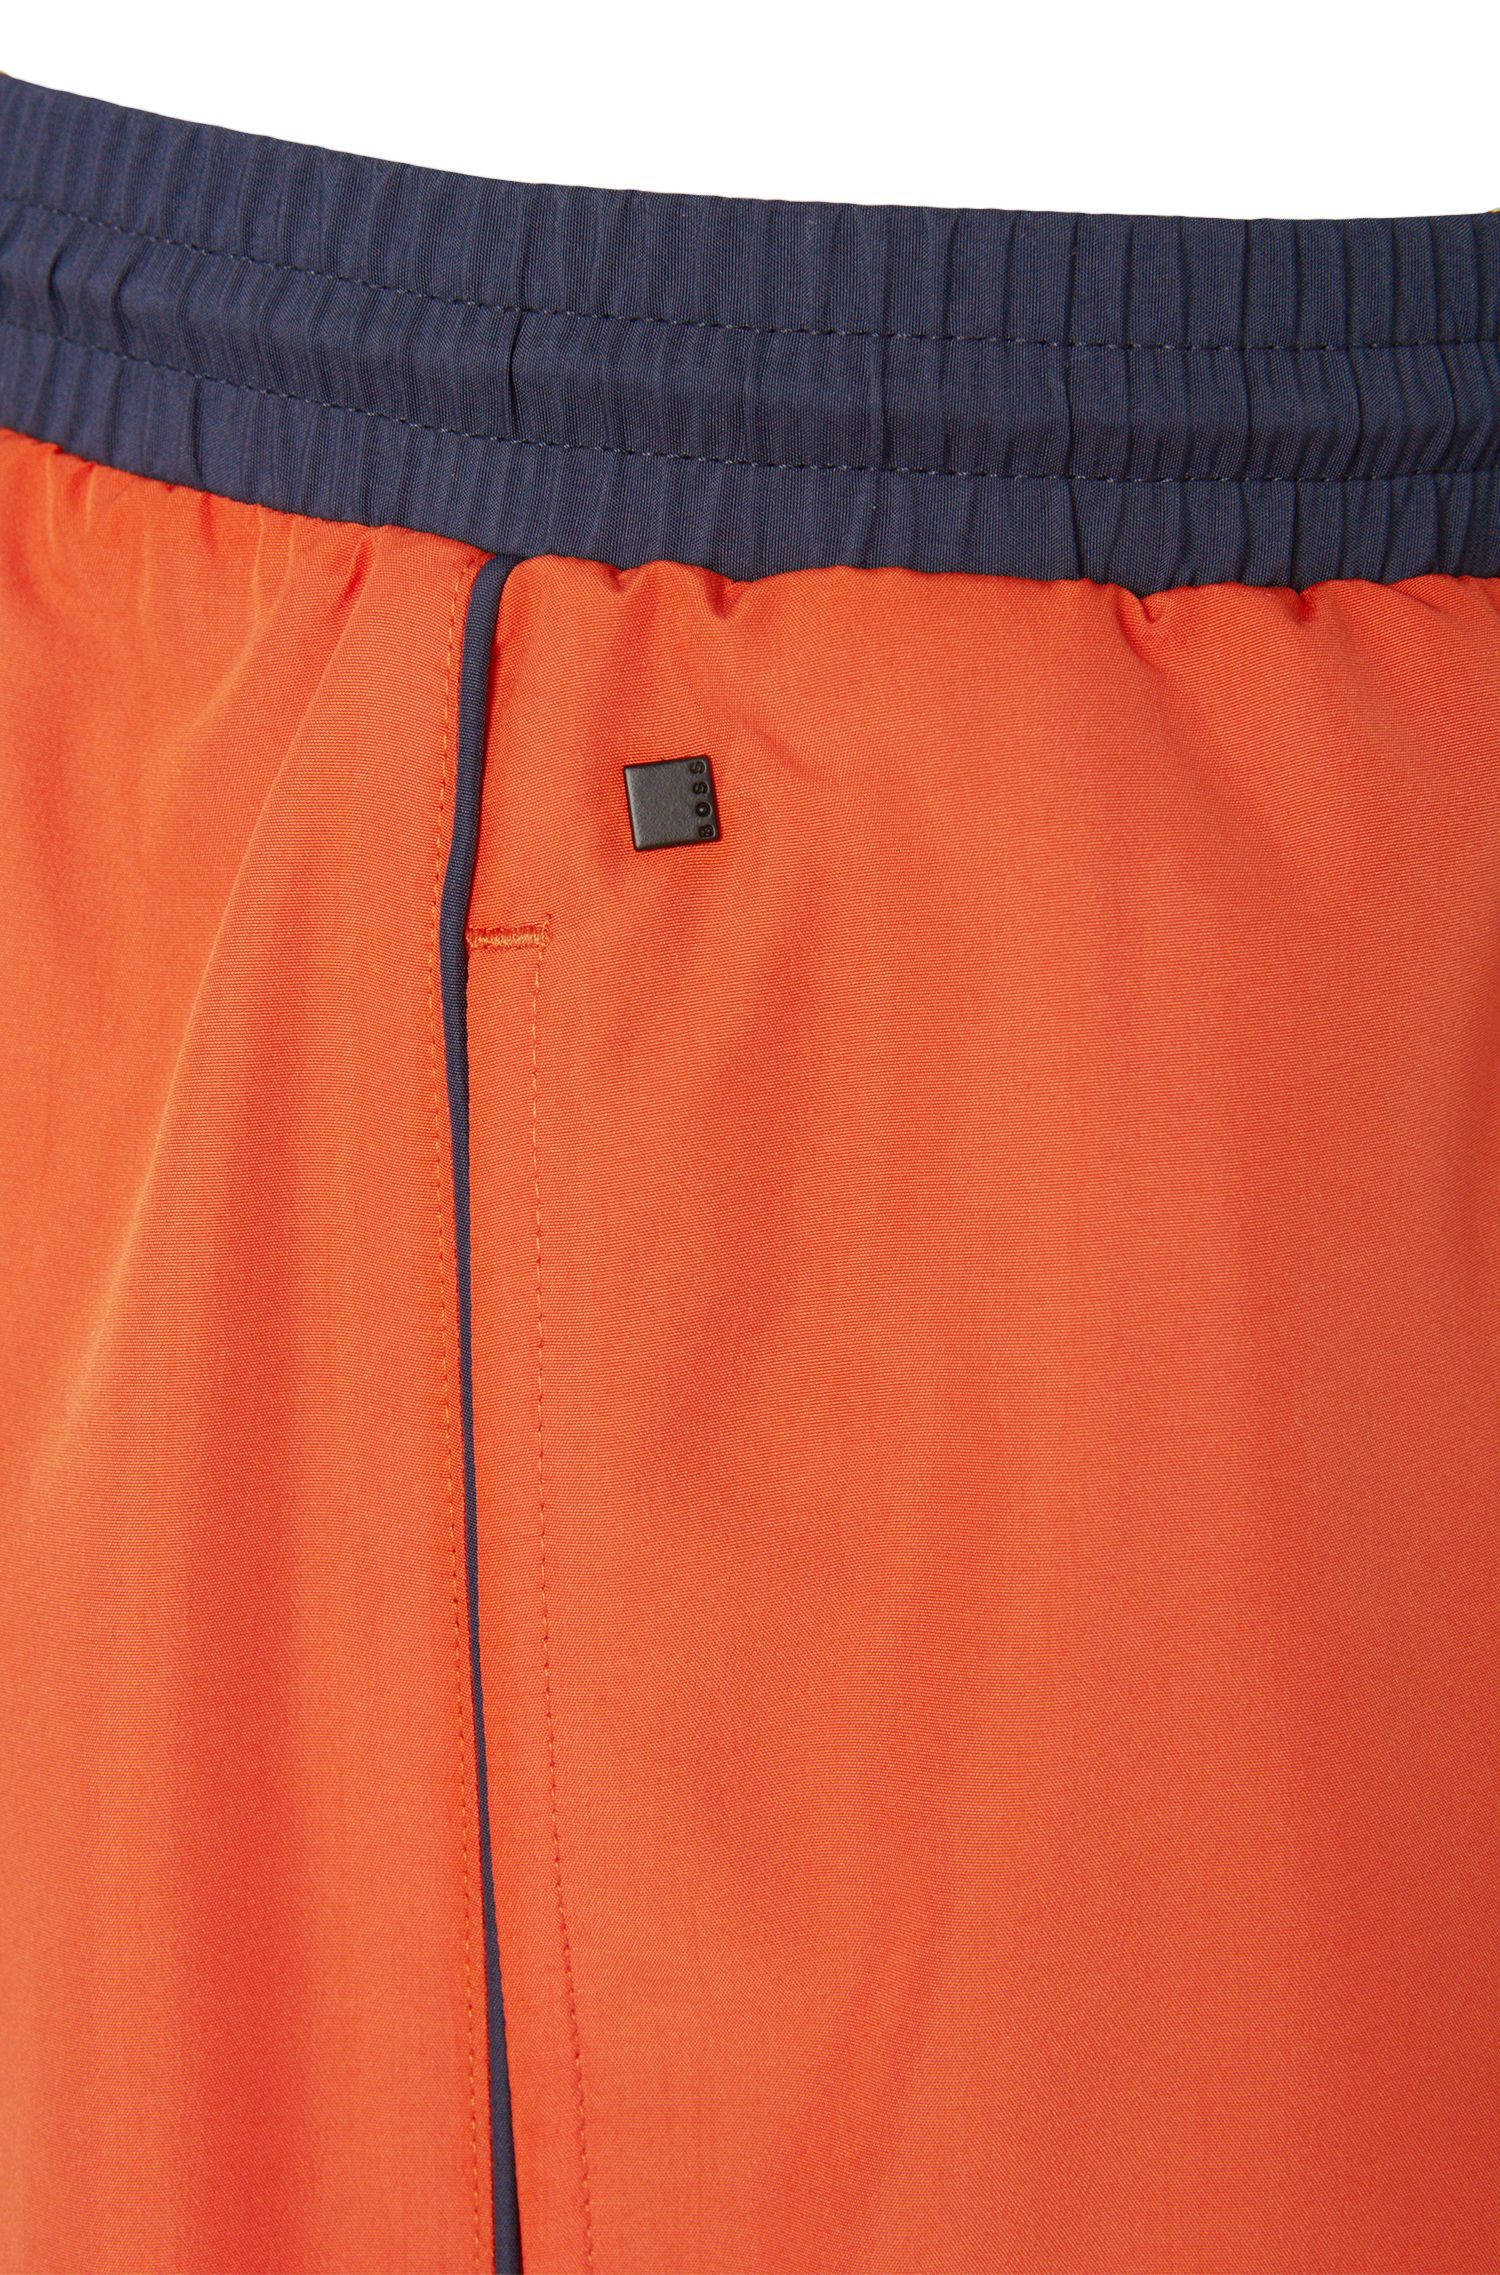 'Starfish' | Quick Dry Swim Trunks